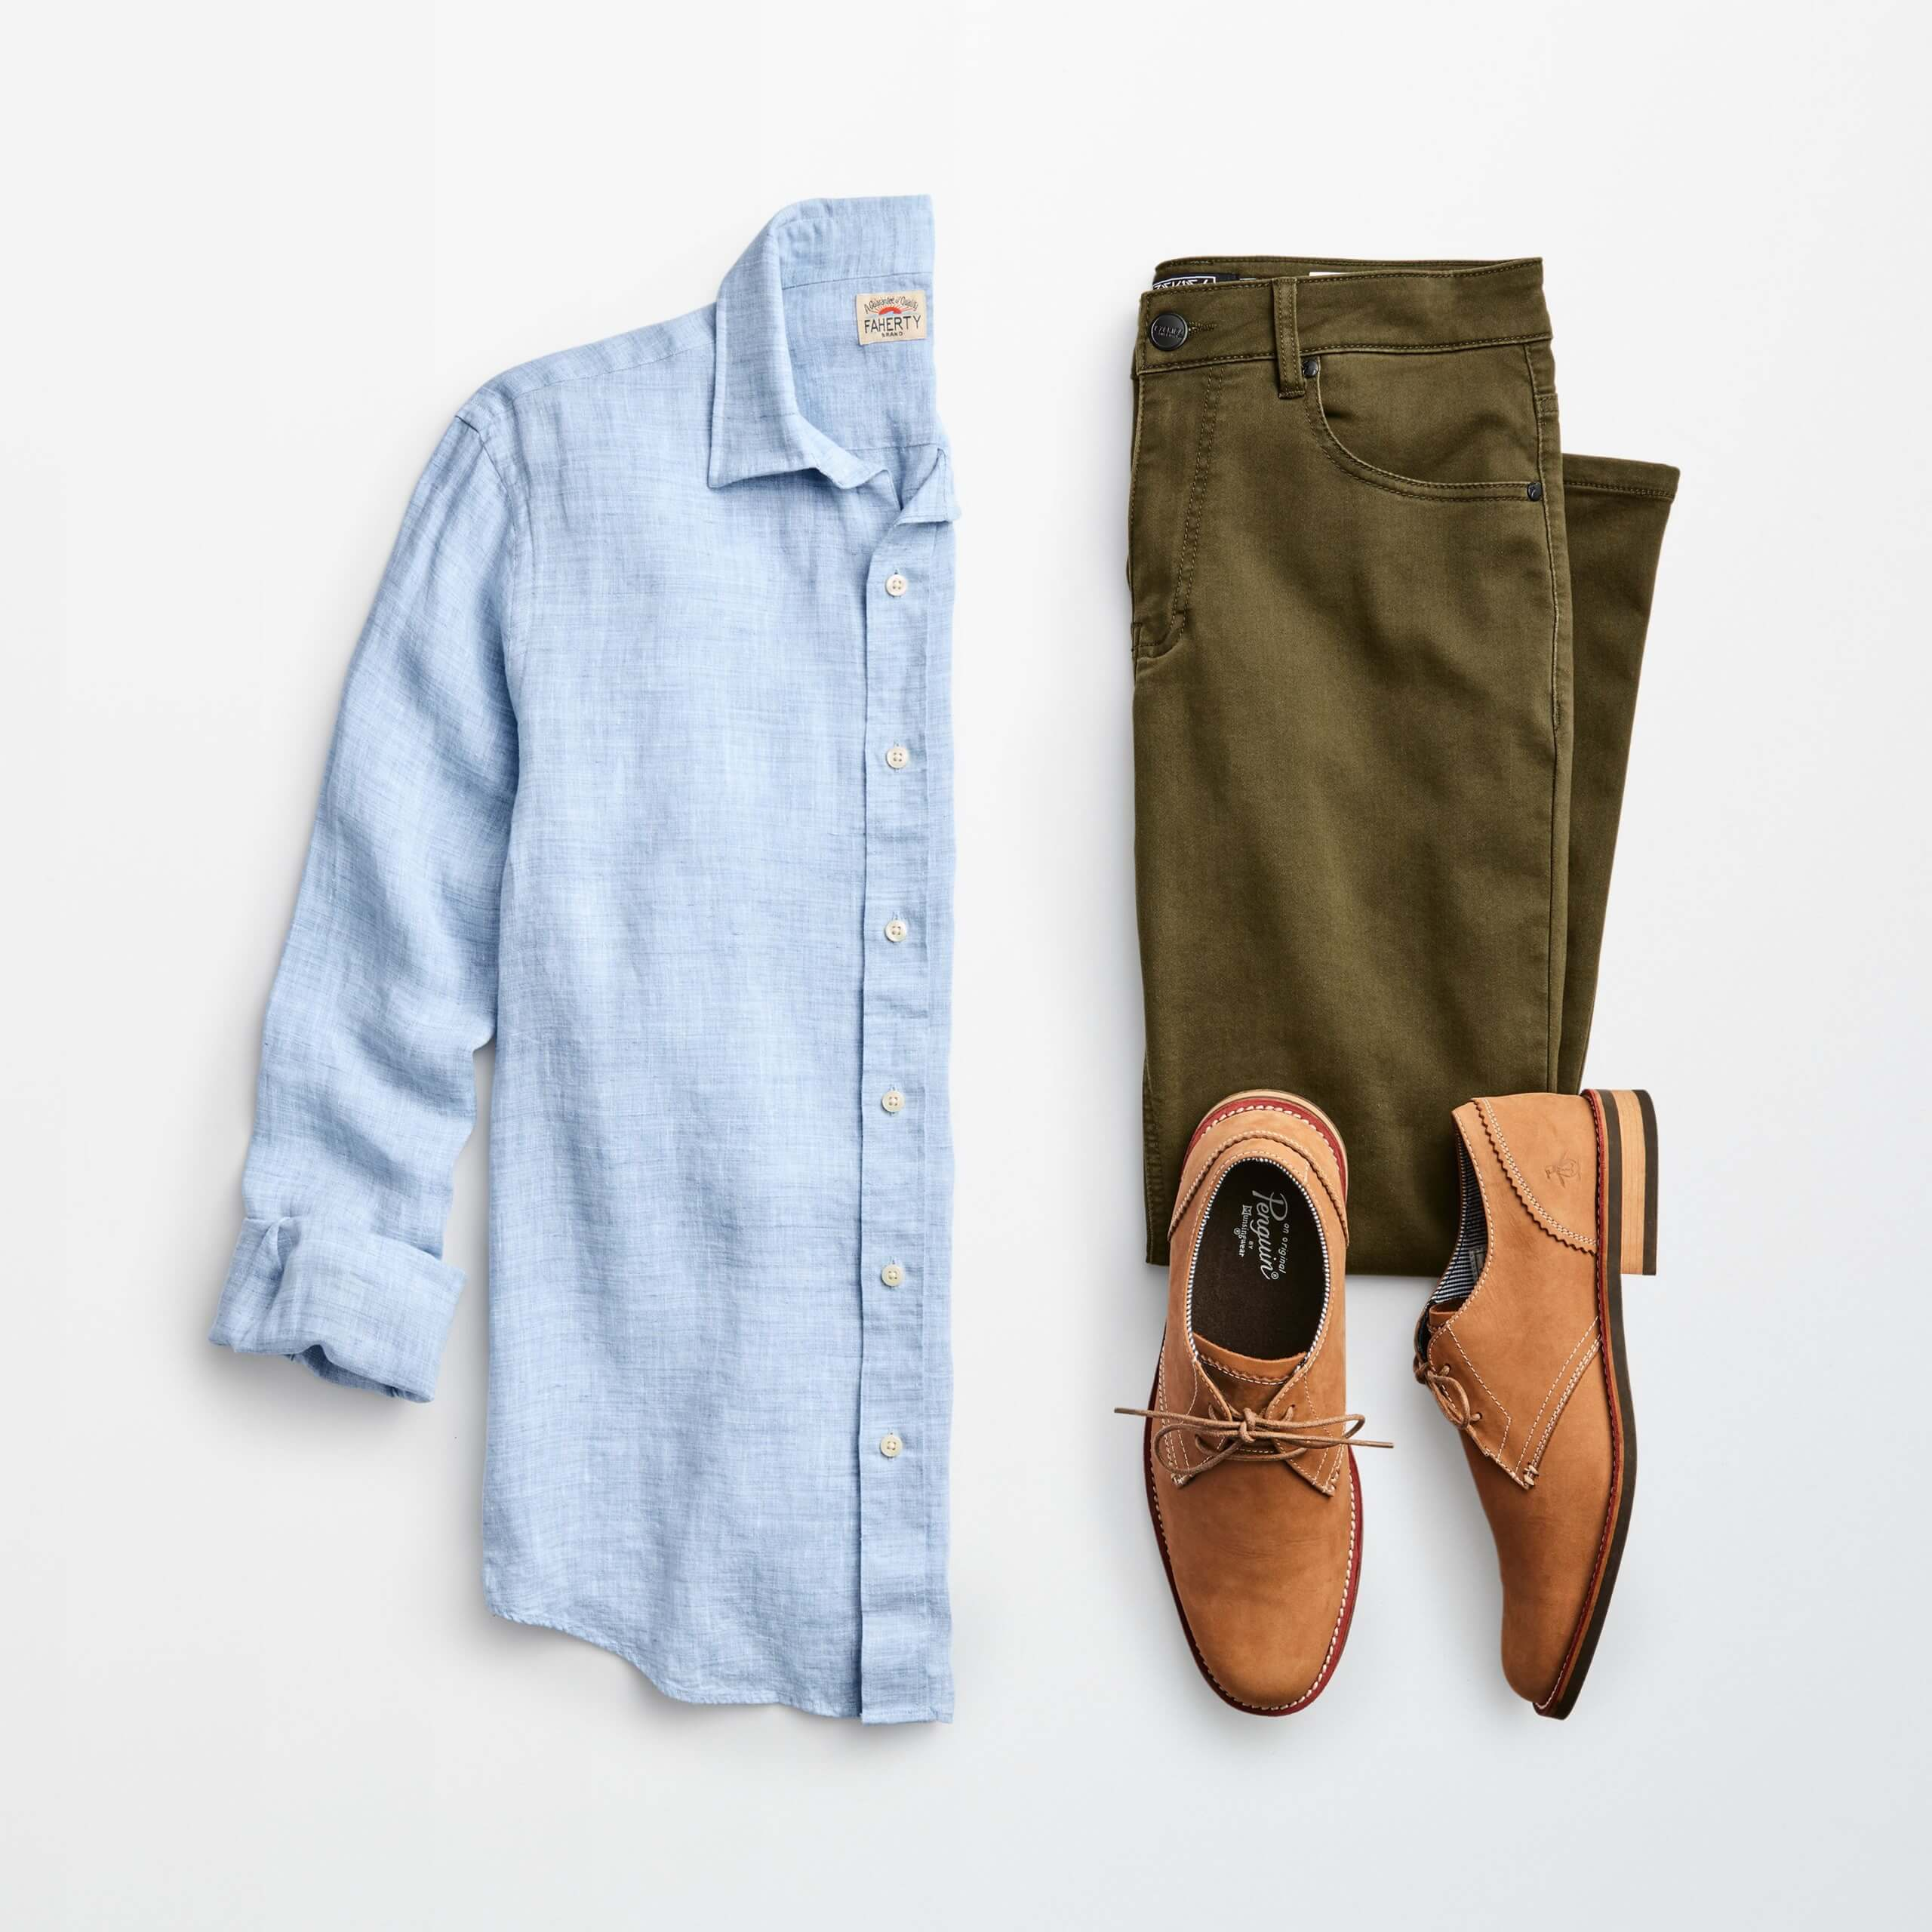 Stitch Fix Men's outfit laydown featuring a light blue linen button-down shirt, olive-green jeans and tan Oxford dress shoes.